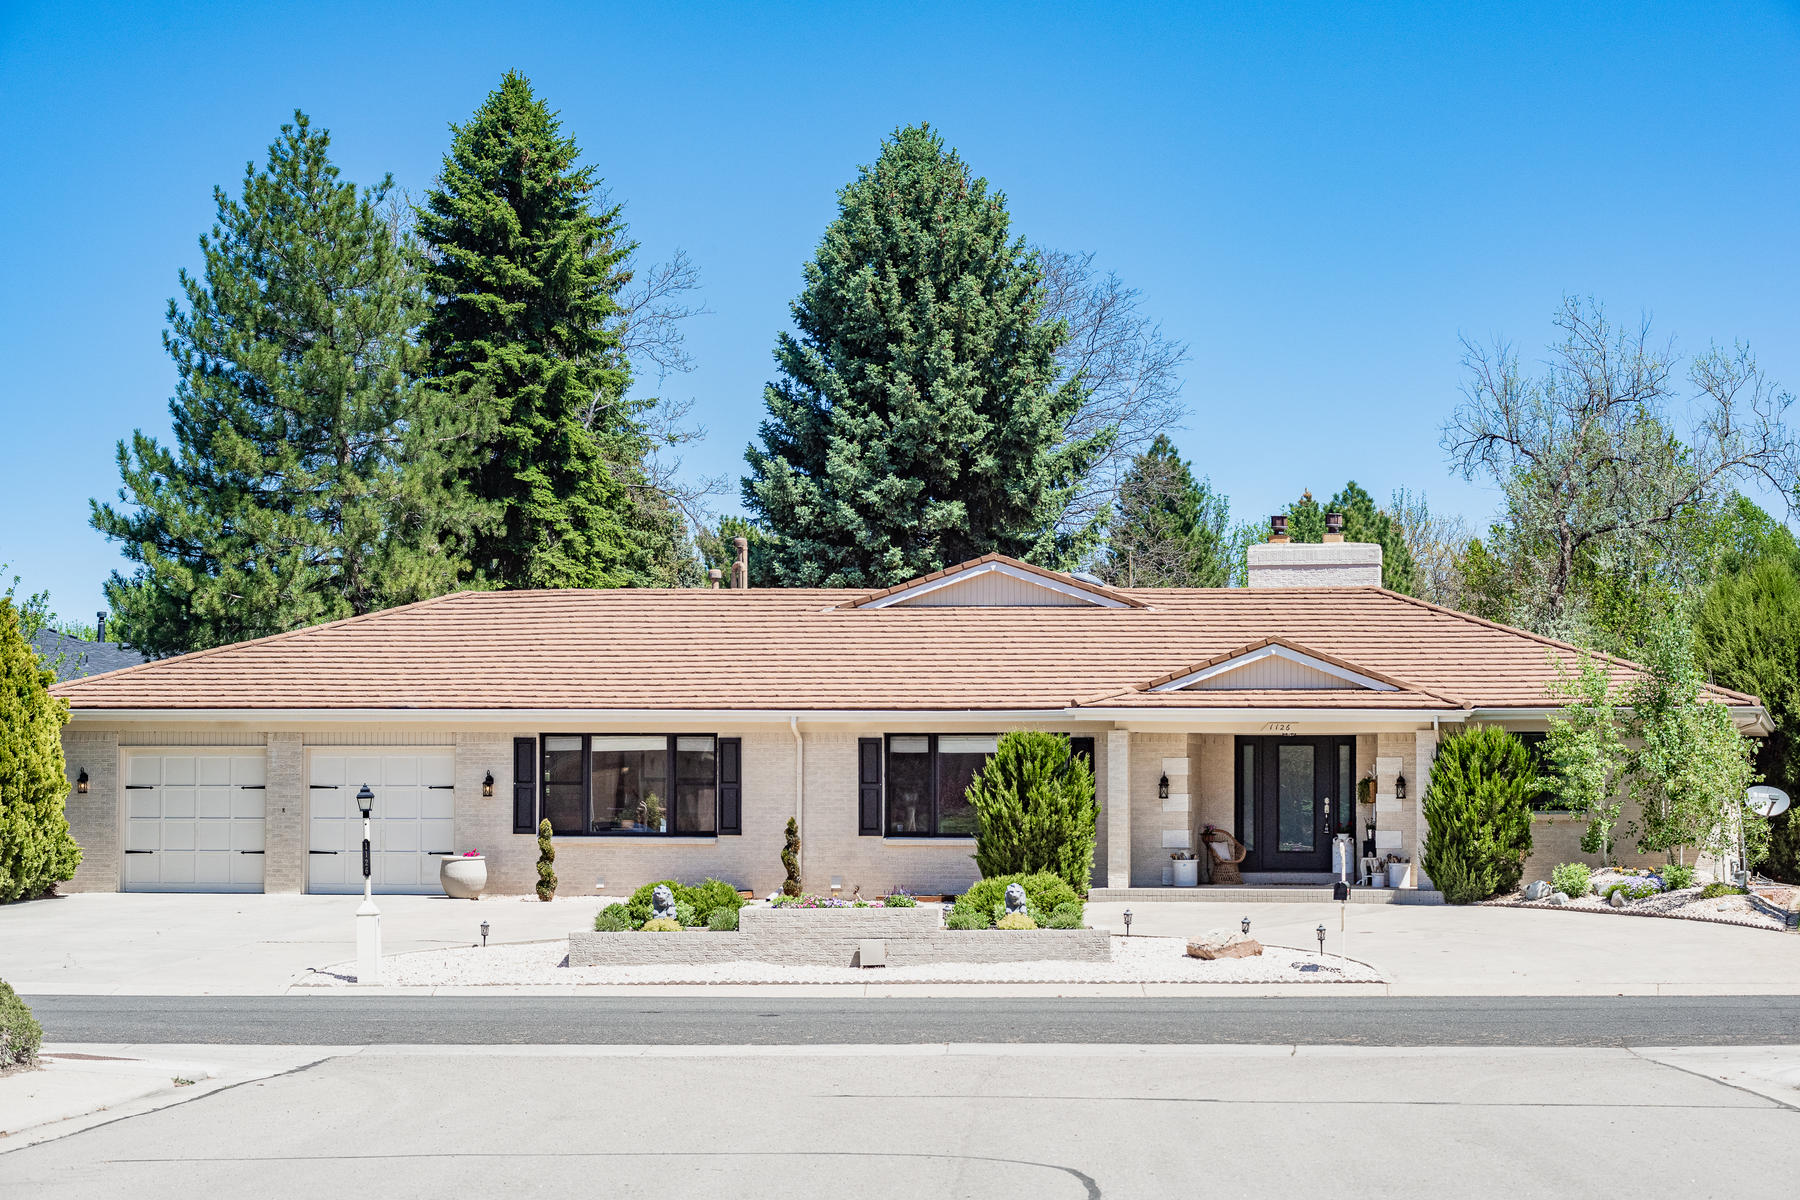 Single Family Homes for Active at Golf Enthusiast! 1126 E 4th Ave Longmont, Colorado 80504 United States